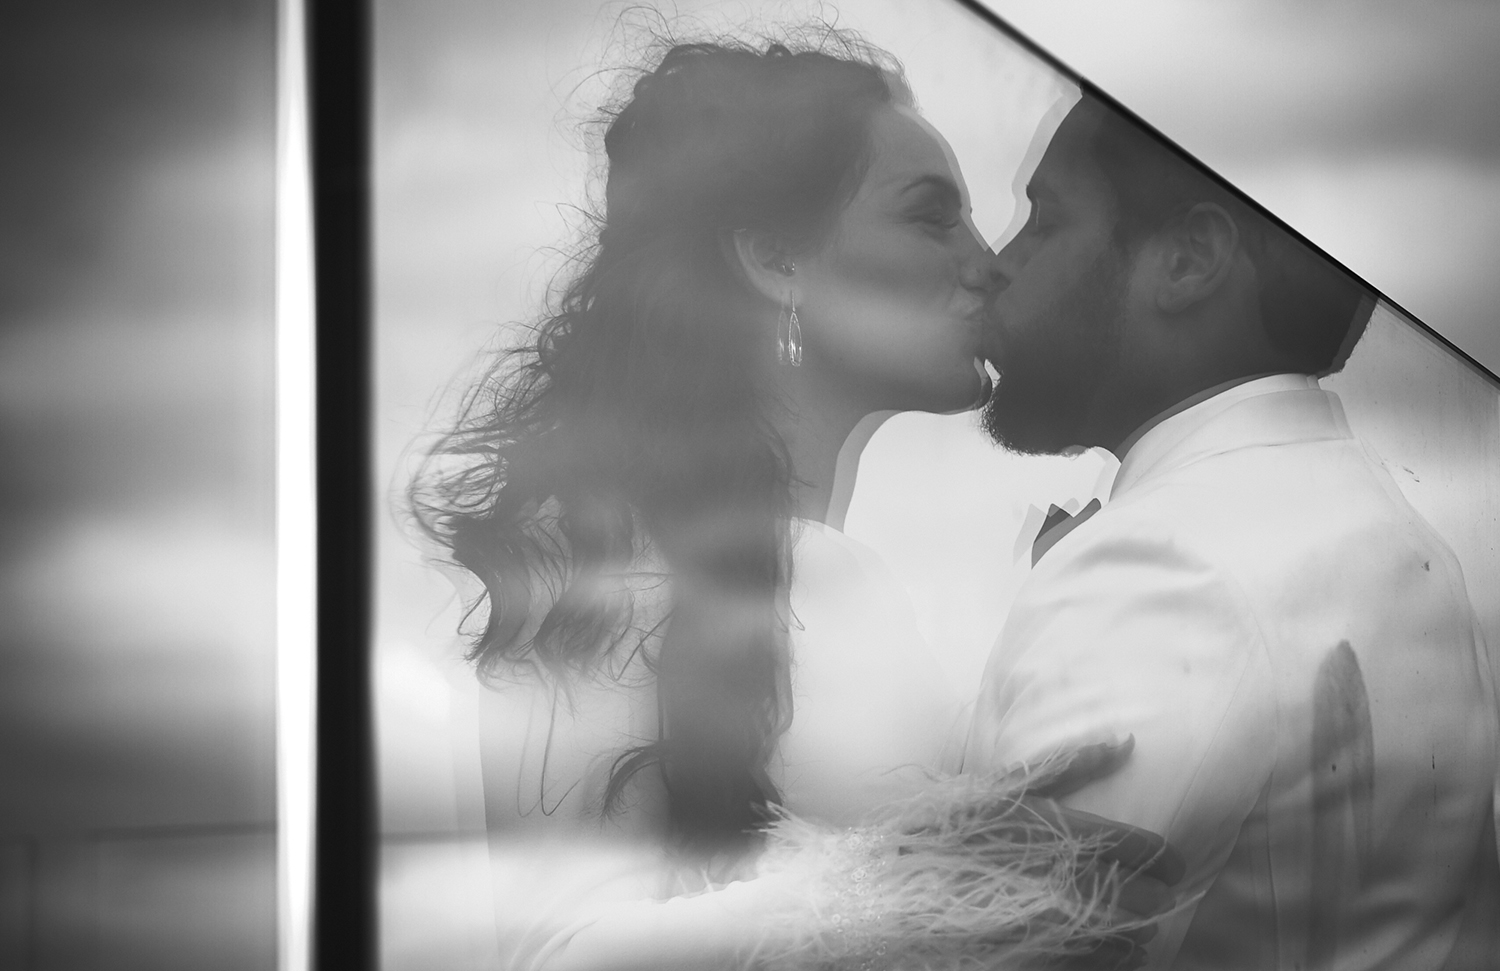 170930_WilliamValeWeddingPhotography_BrooklynWeddingPhotographer_By_BriJohnsonWeddings_0095.jpg